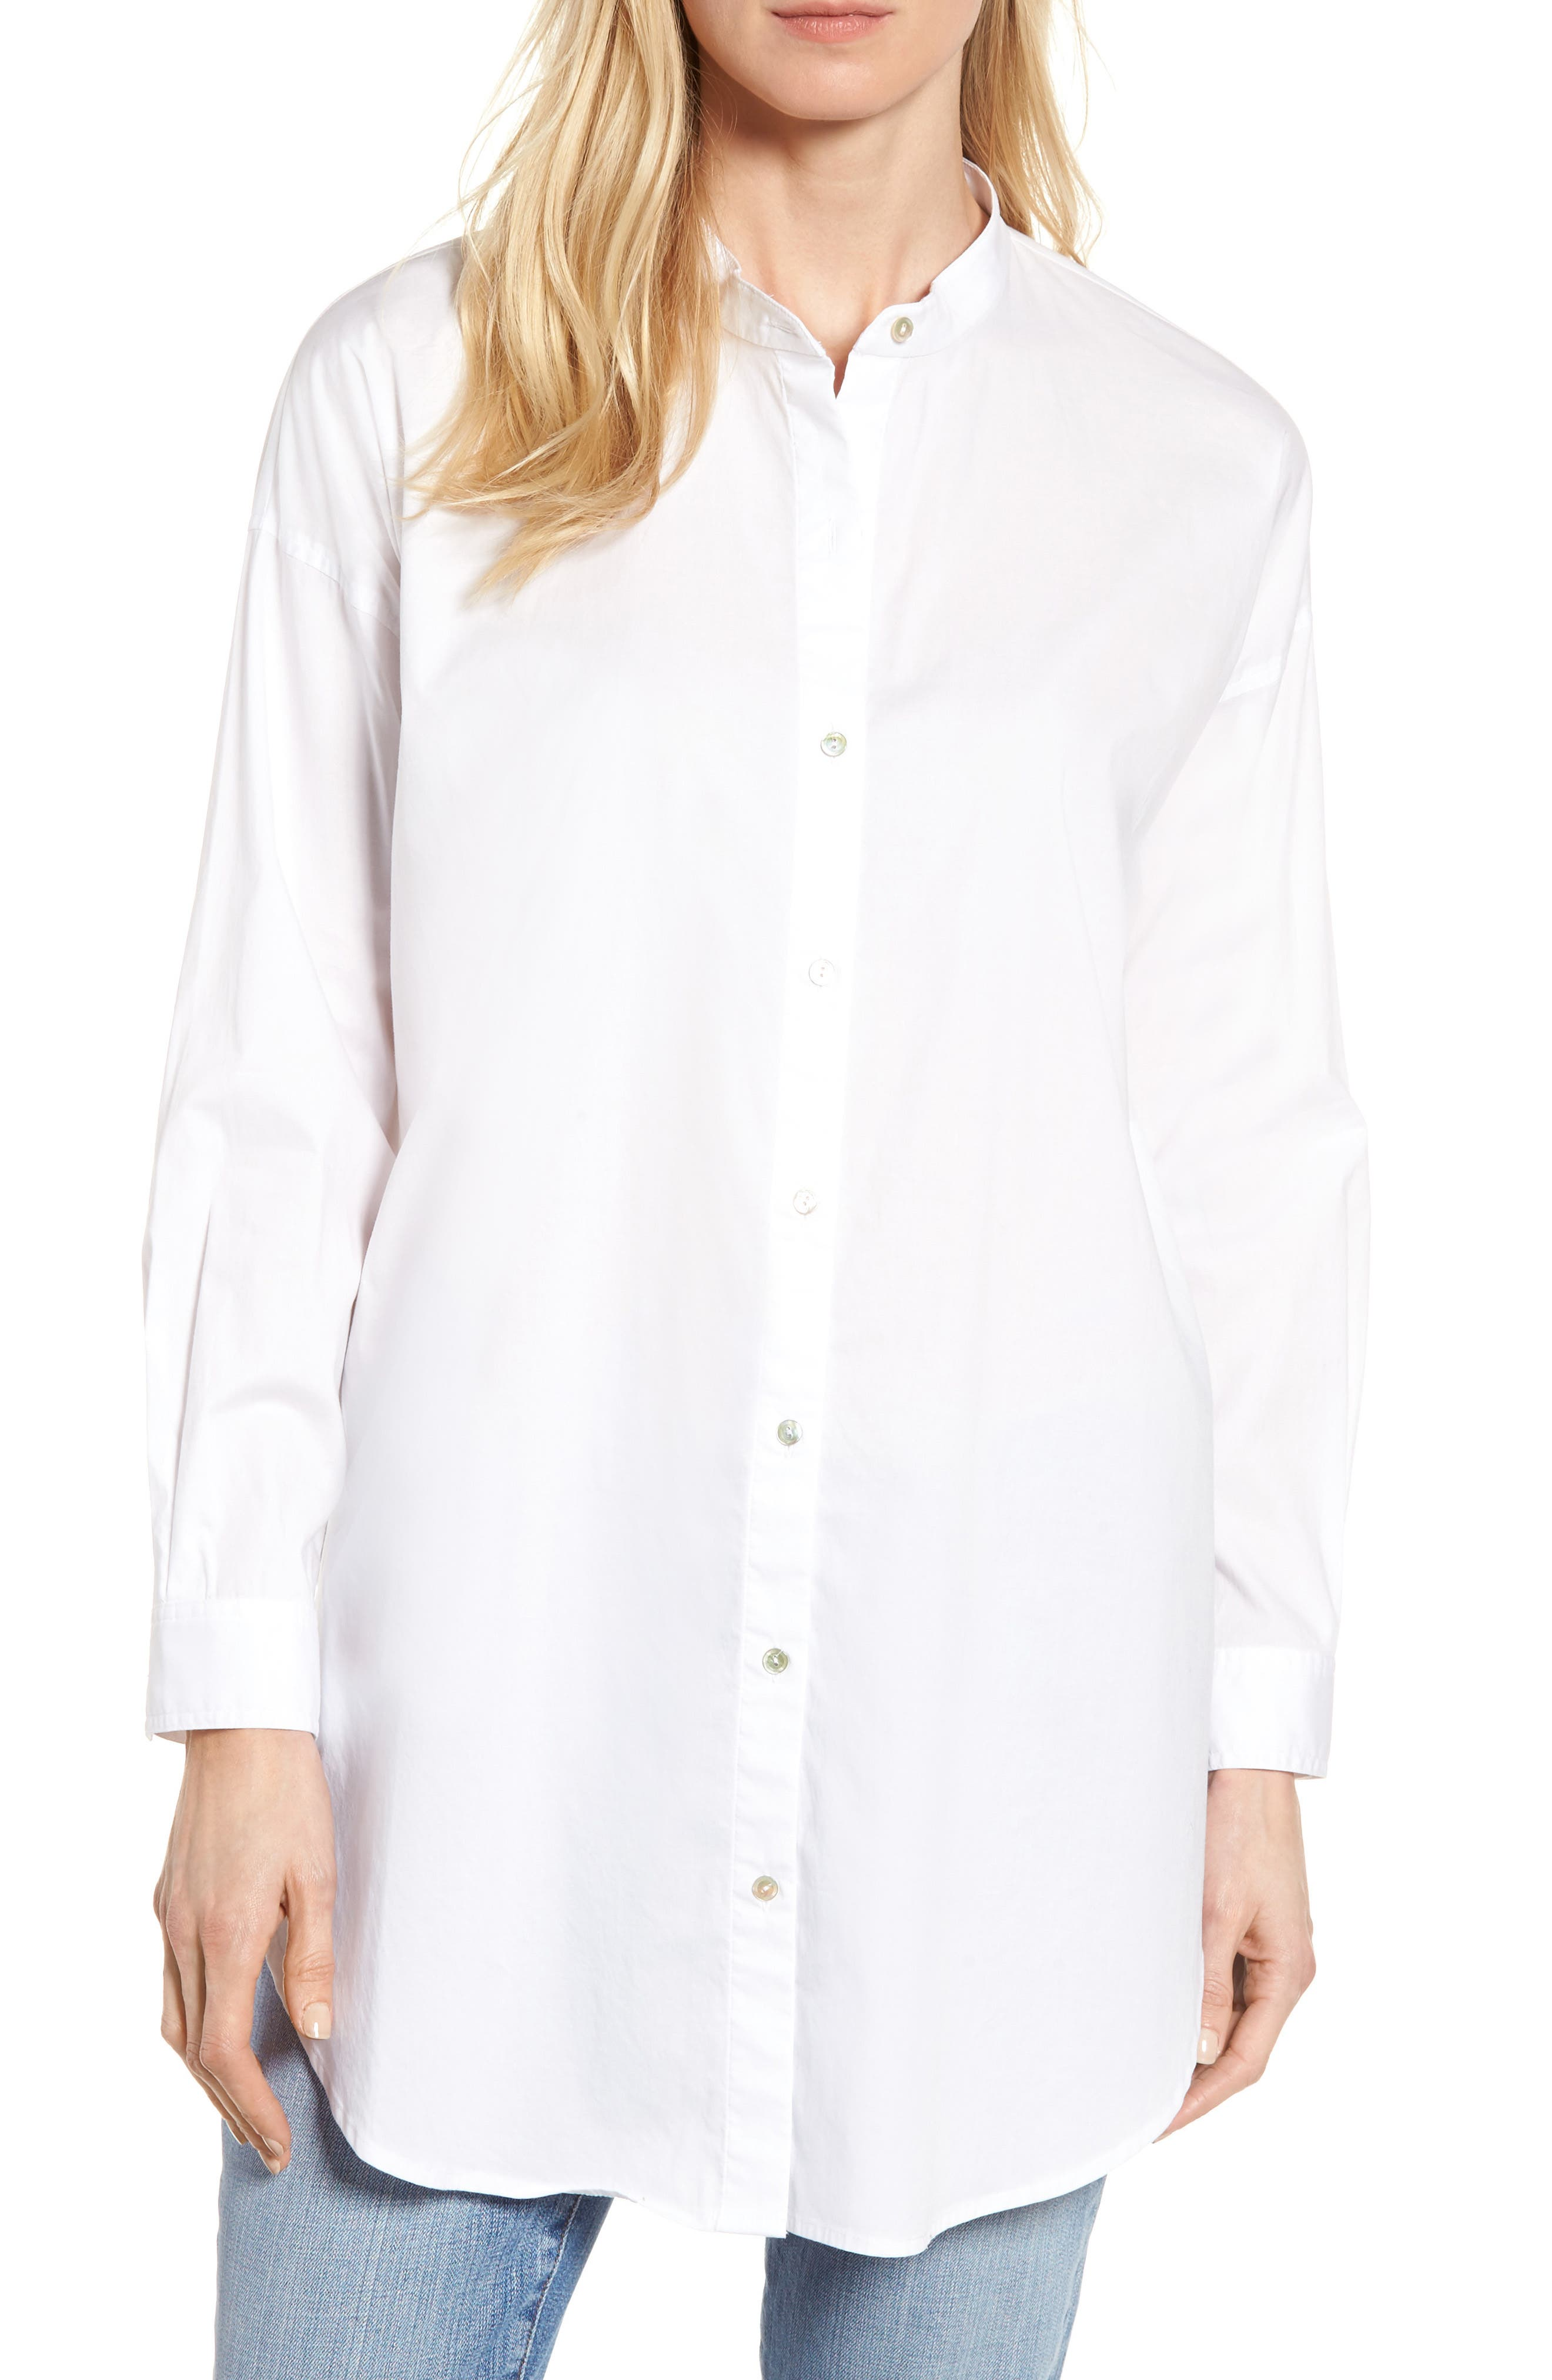 Eileen Fisher Stretch Organic Cotton Tunic Shirt (Regular & Petite)